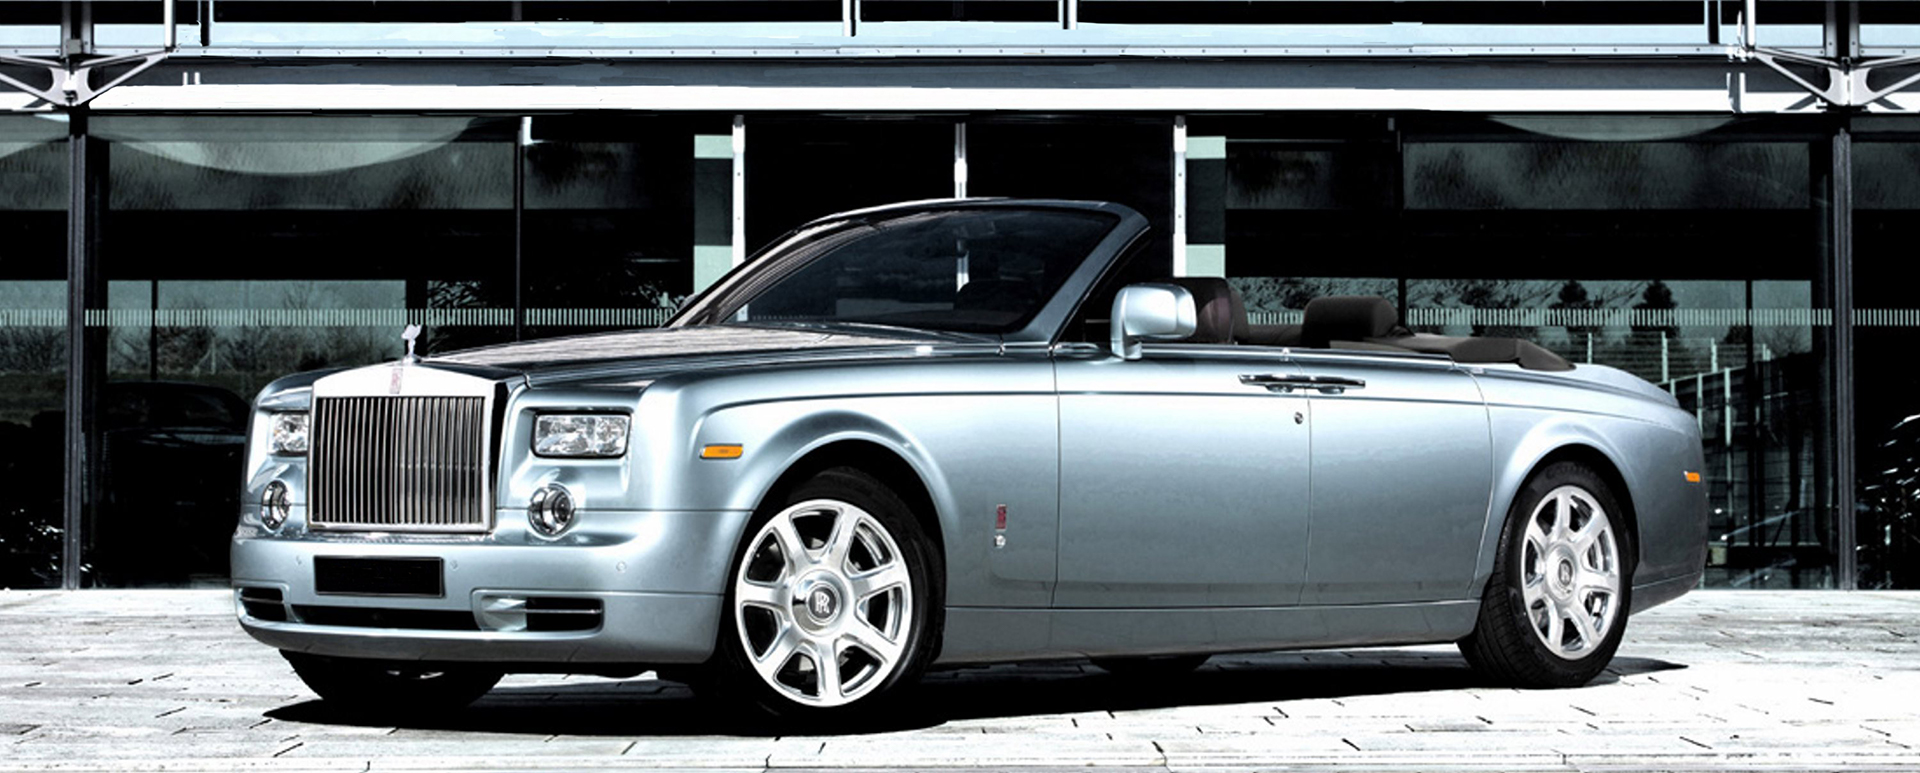 ROLLS ROYCE GHOST CONVERTIBLE